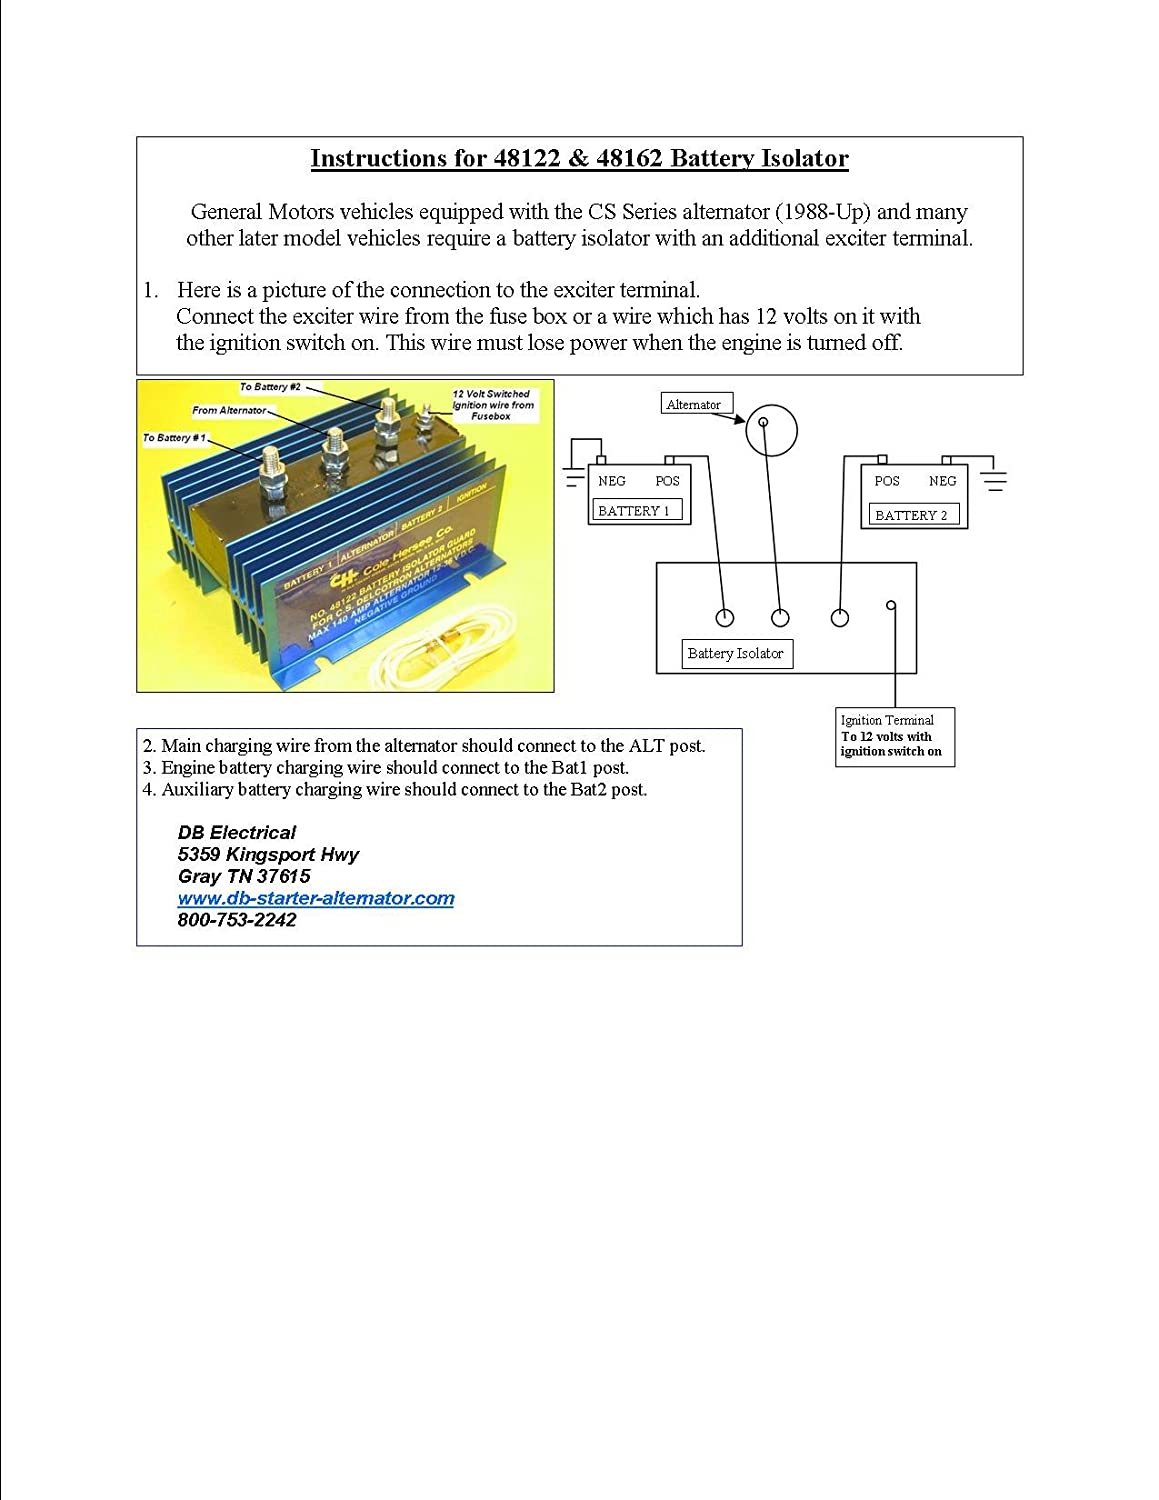 71x%2BmMhUYHL._SL1500_ amazon com cole hersee 48122 battery isolator automotive Motorhome Battery Wiring Diagram at suagrazia.org